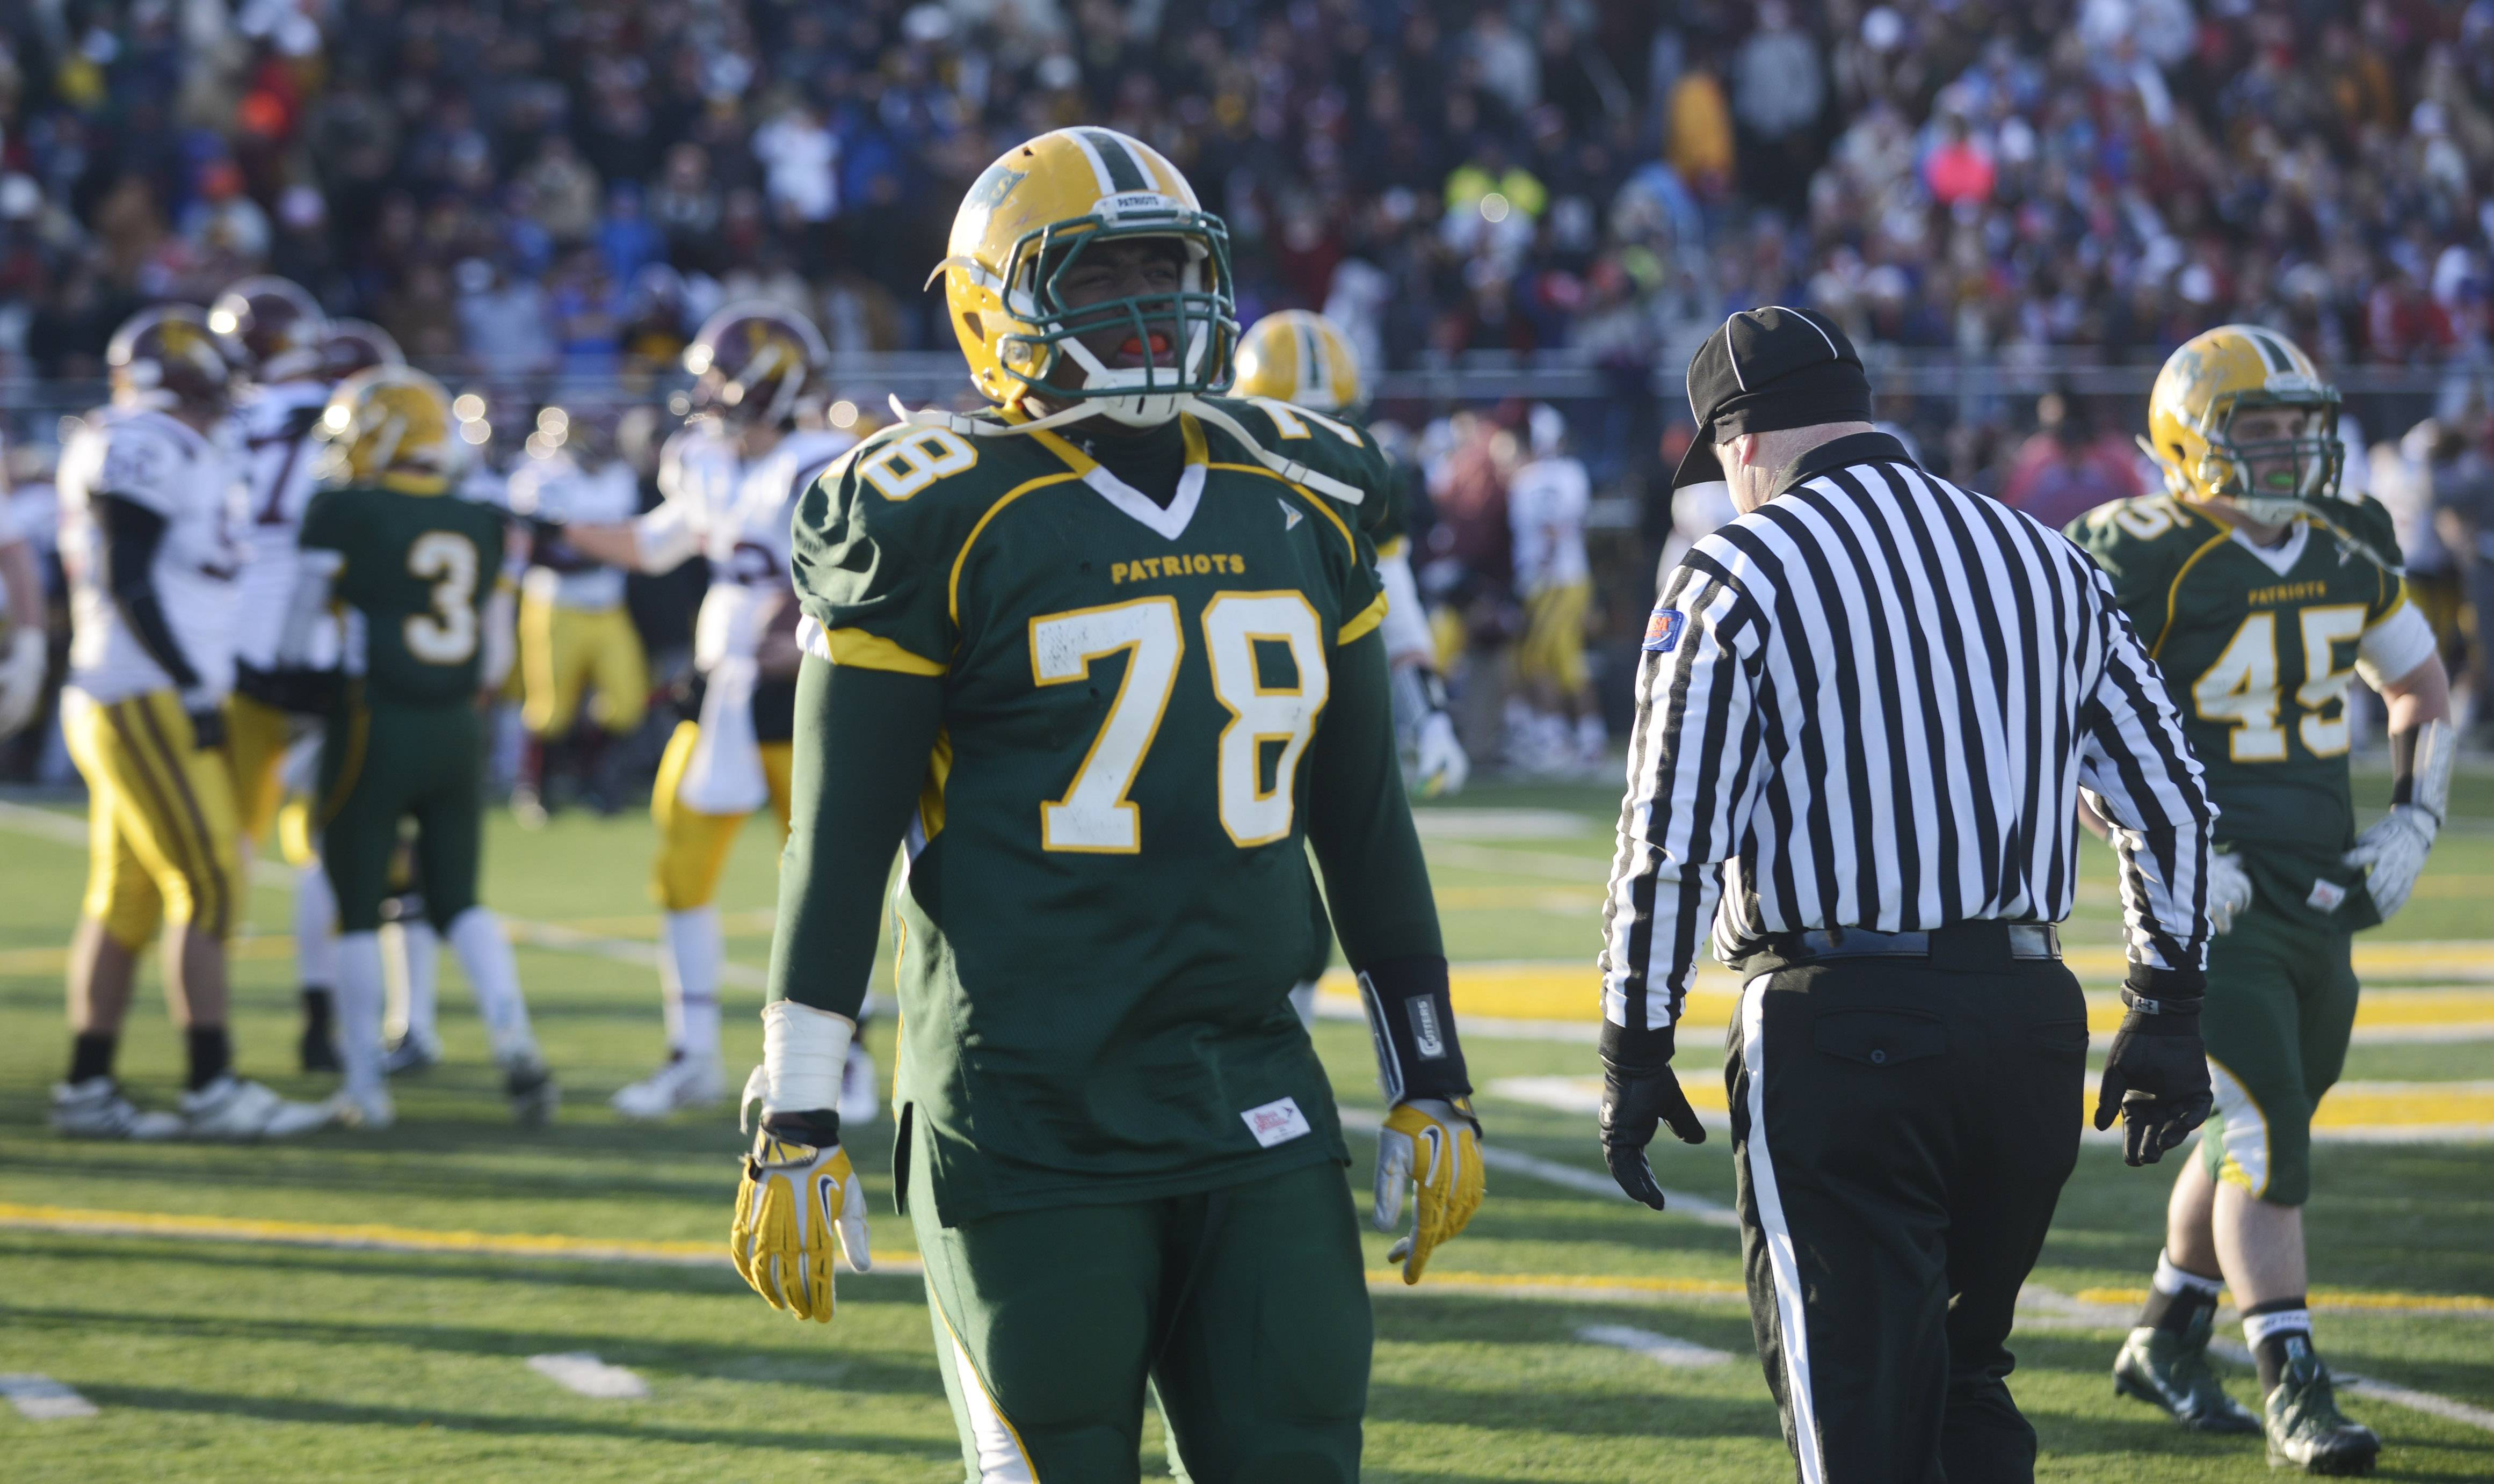 Stevenson lineman Nick Dillon will play for Eastern Michigan next year.